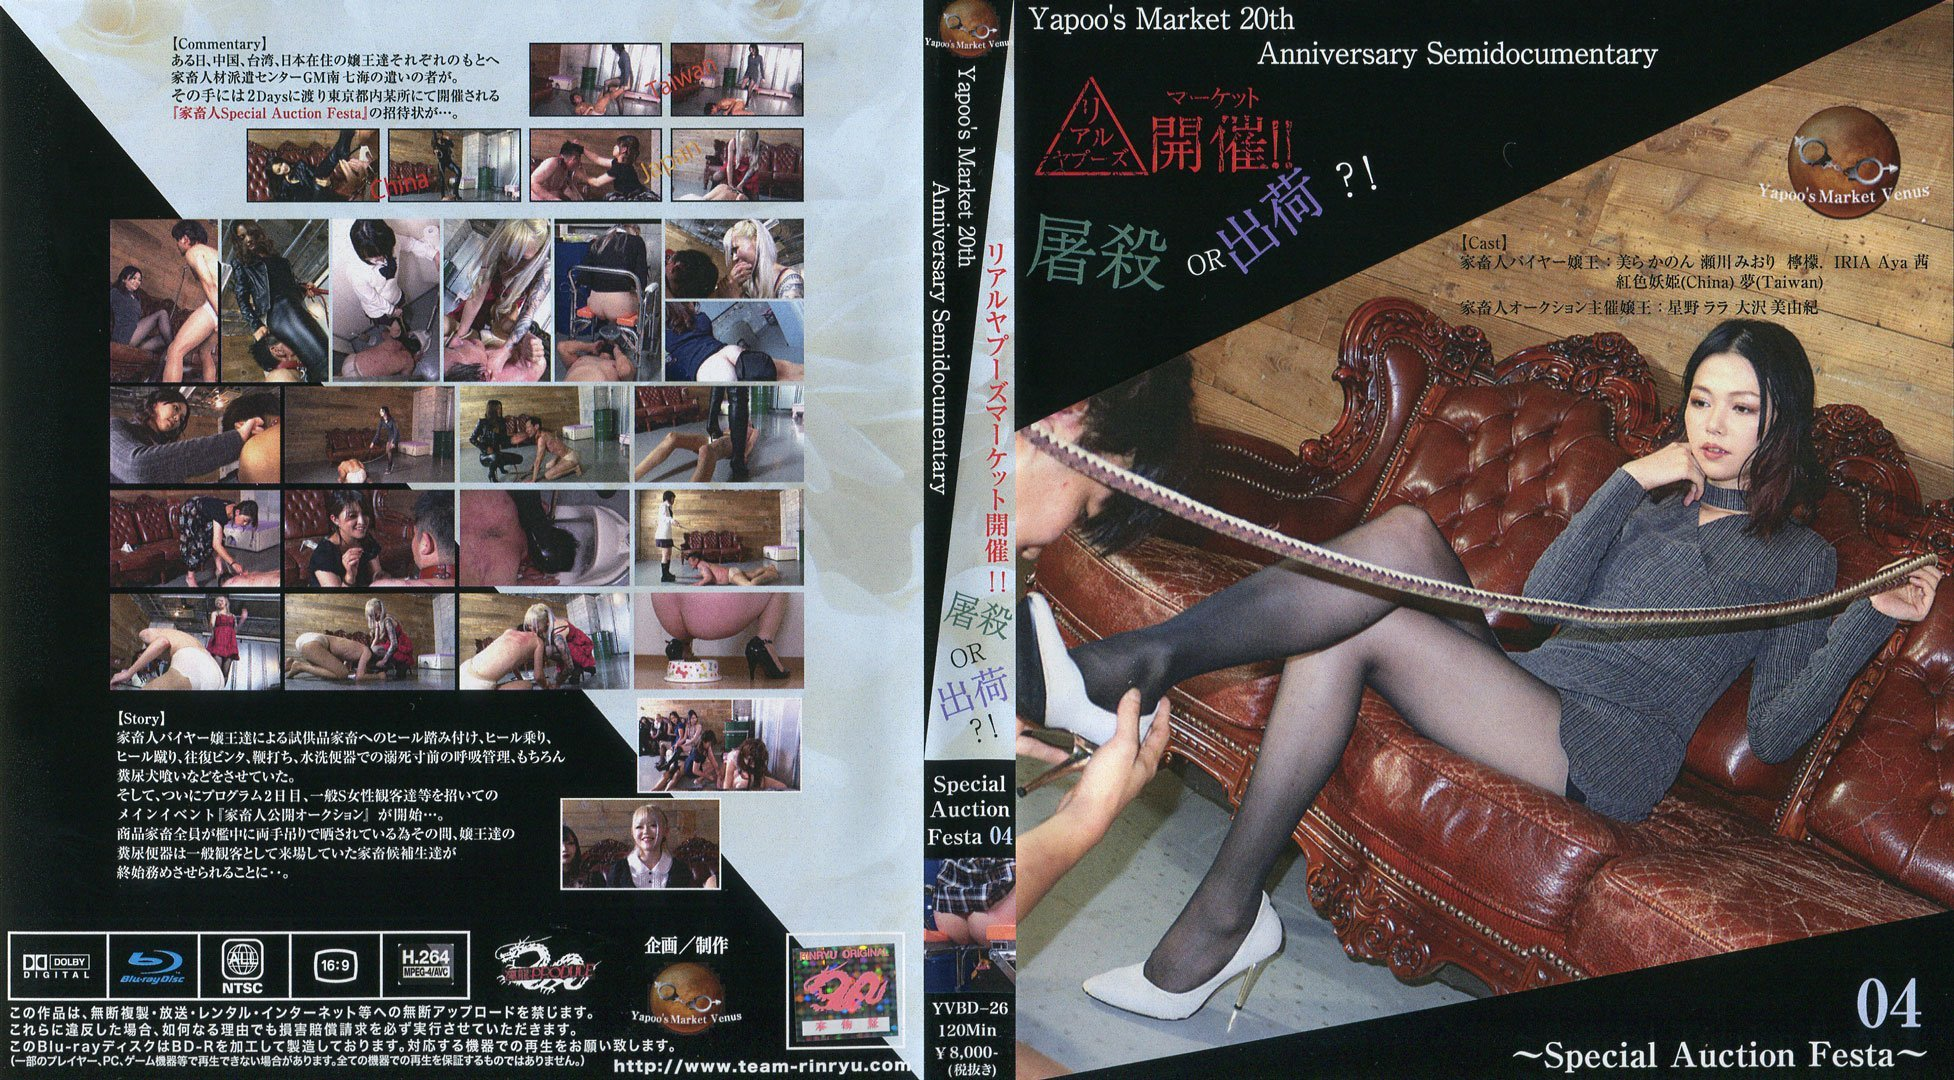 YVBD-26 – Yapoo's Market 20th Anniversary Semidocumentary – BluRay